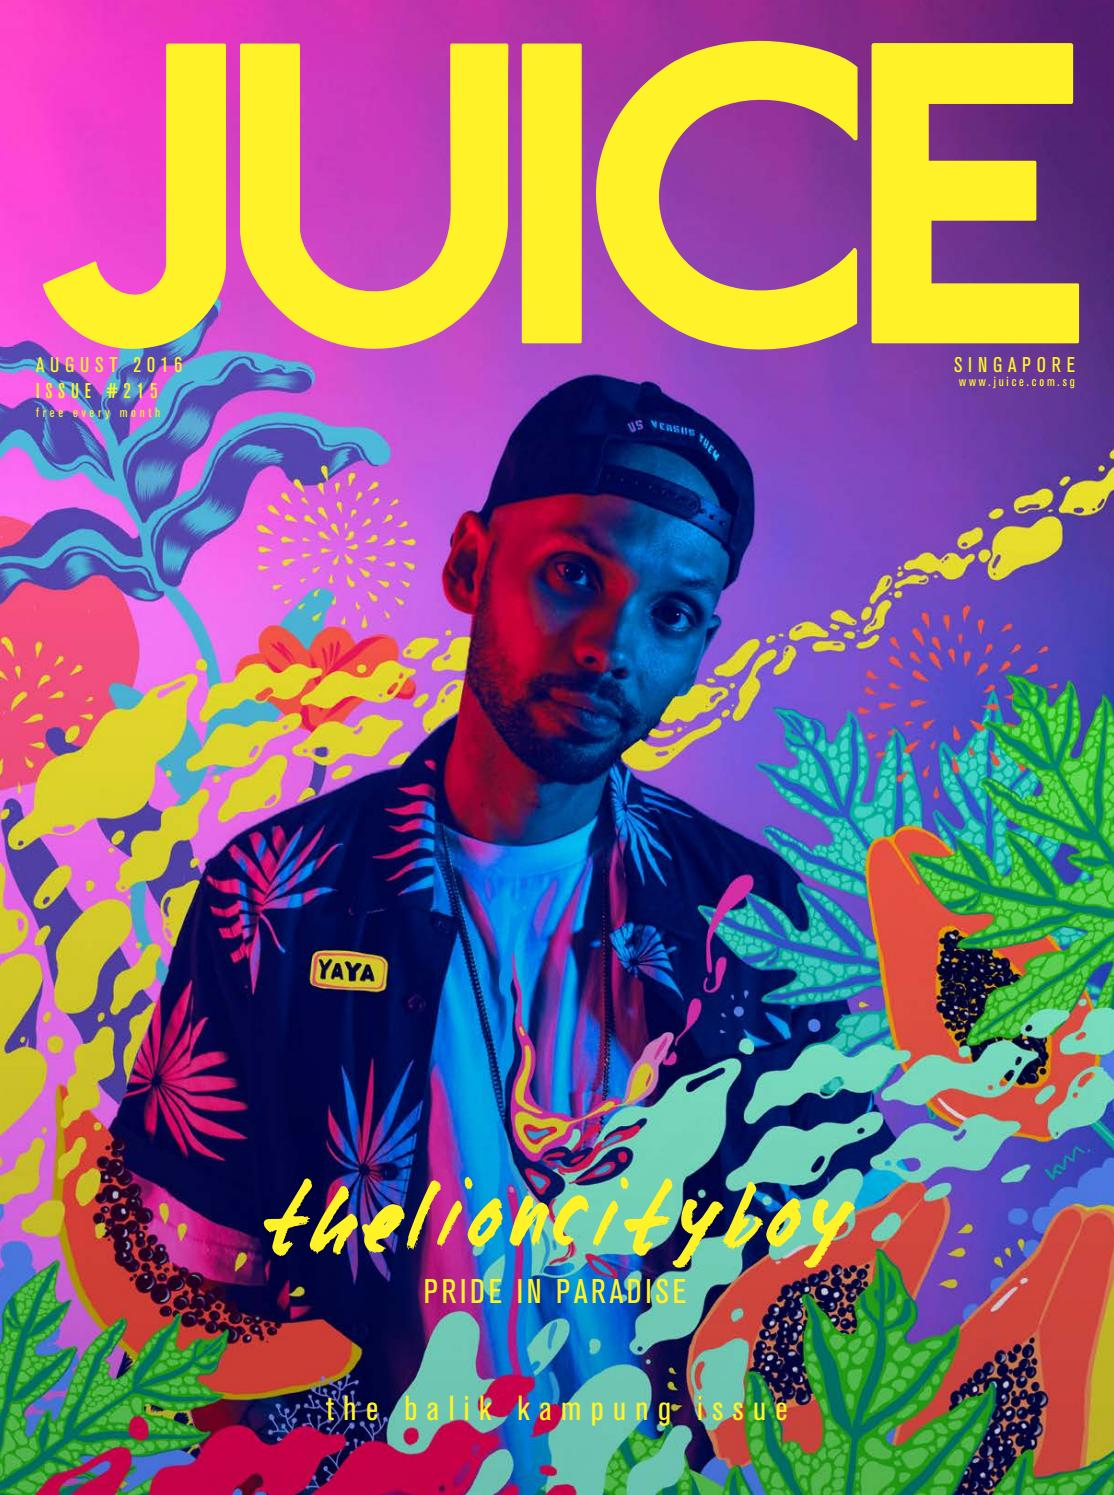 Juice August 2016 Thelioncityboy Issue 215 By Issuu Tendencies Get Lost Pocket Keychain Black